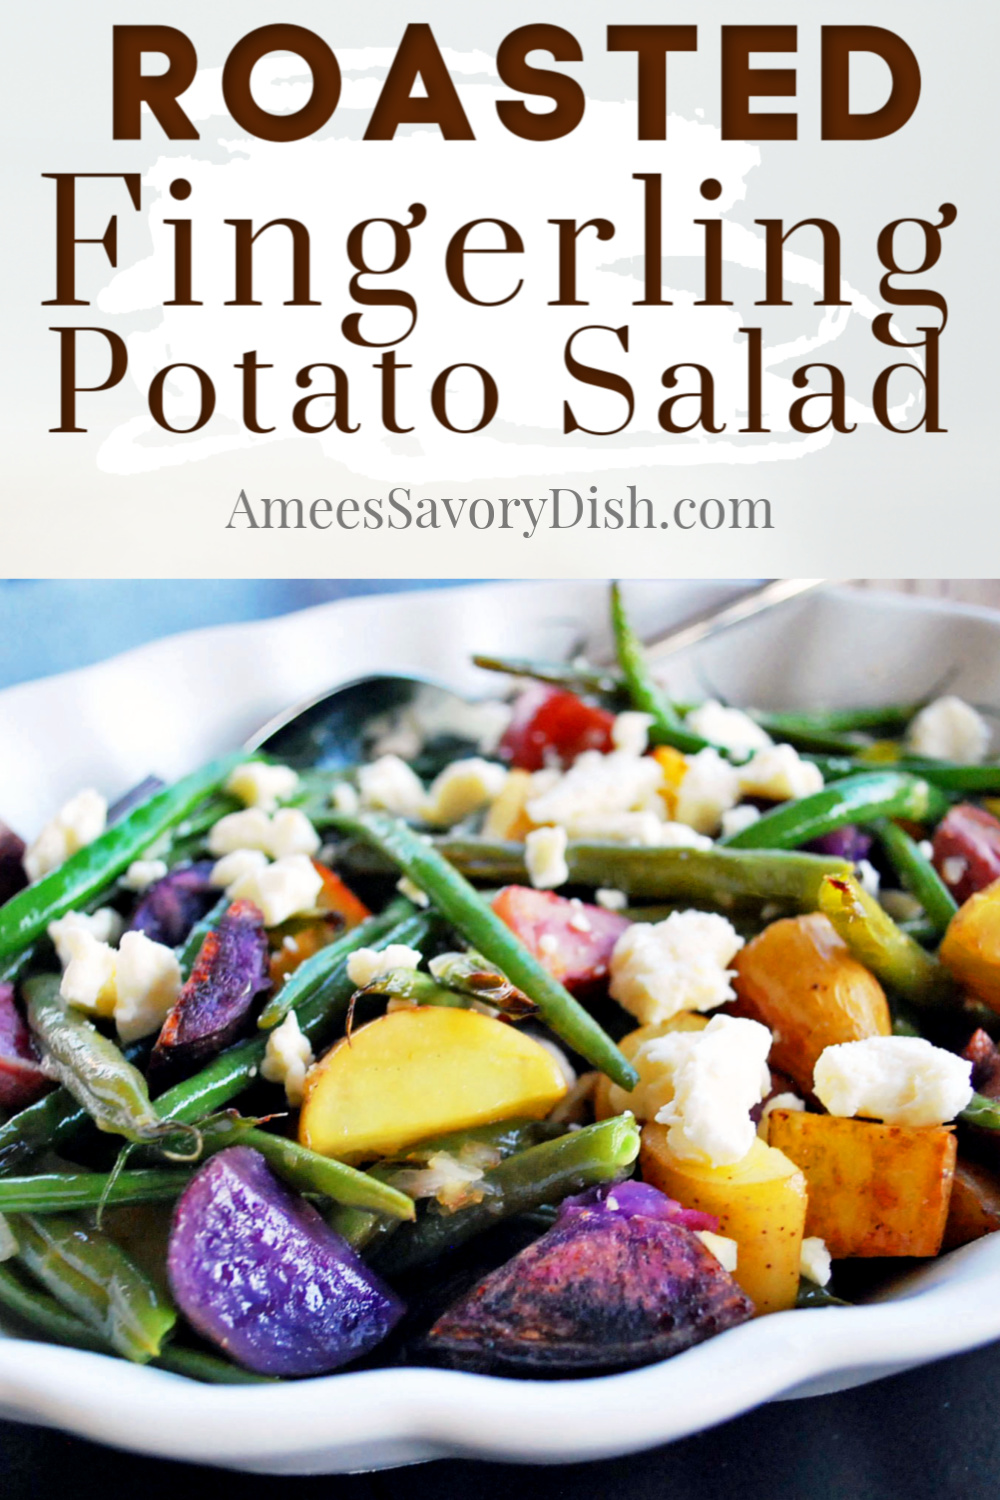 Roasted fingerling potato salad with green beans and feta cheese is a delicious and easy to make side salad recipe topped with a delicious lemon balsamic vinaigrette. #potatosalad #potatorecipe #roastedpotatosalad #fingerlingpotatoes via @Ameessavorydish